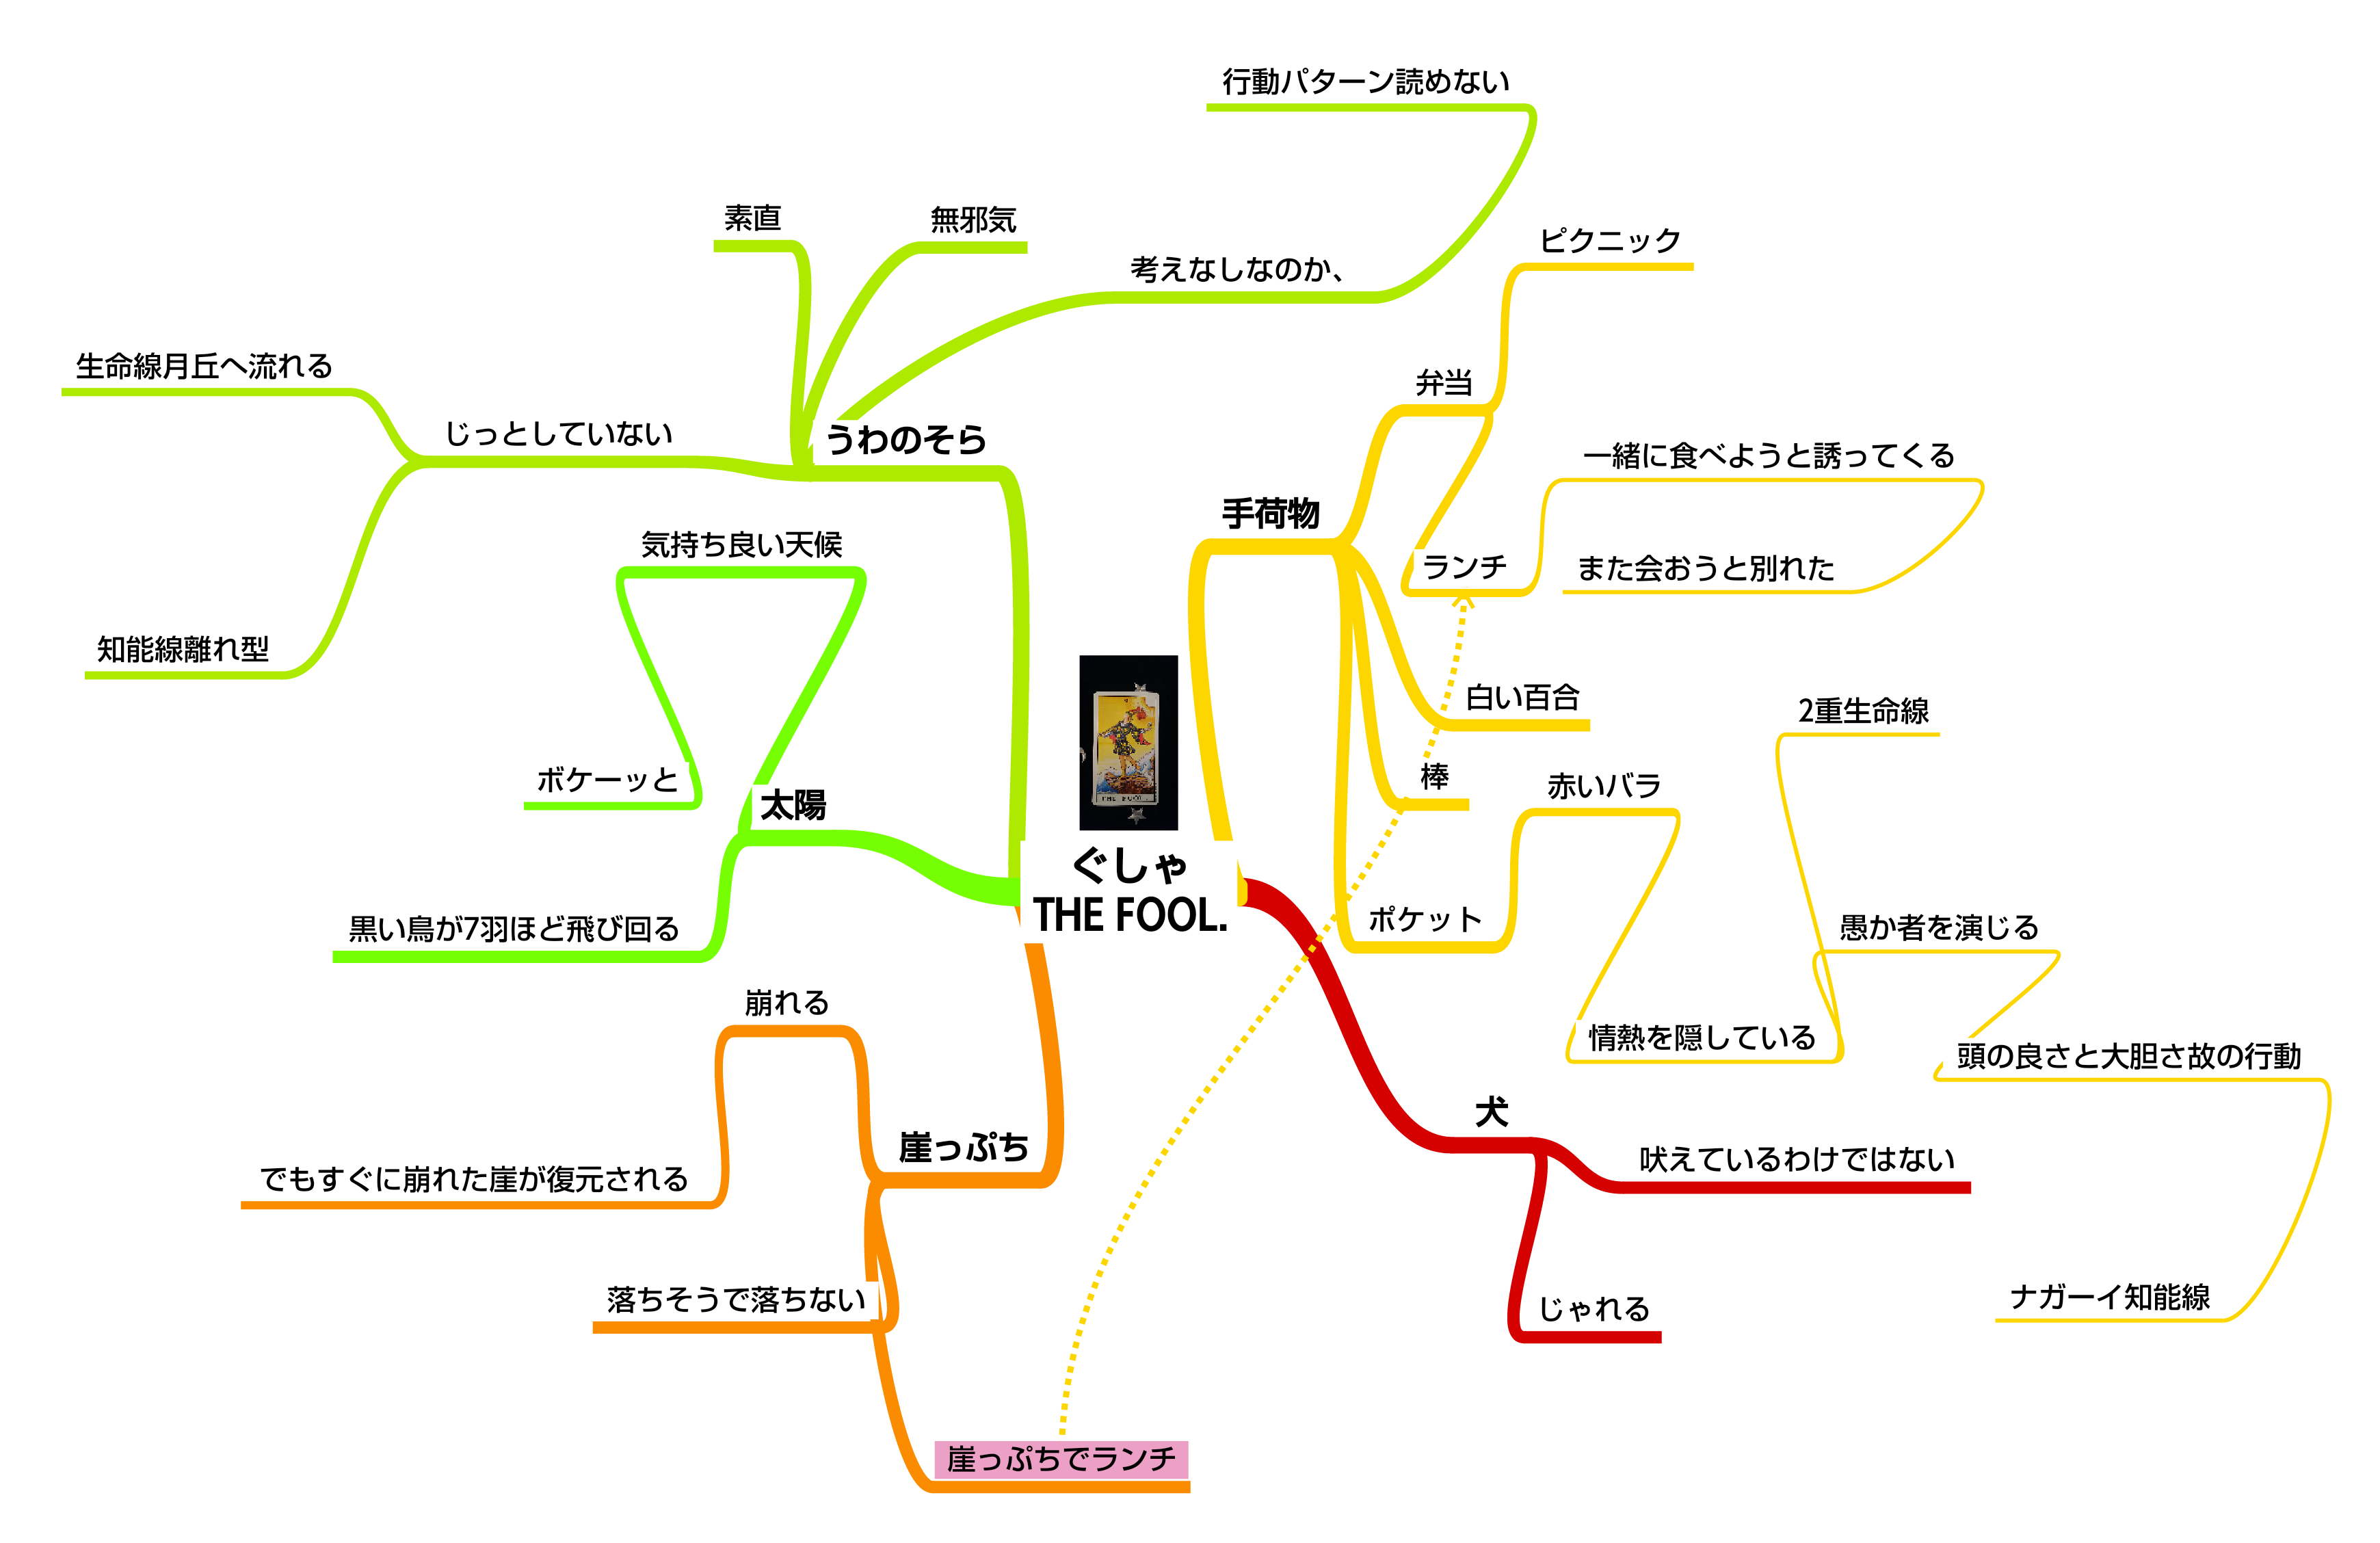 Mind Map - ぐしゃ THE FOOL